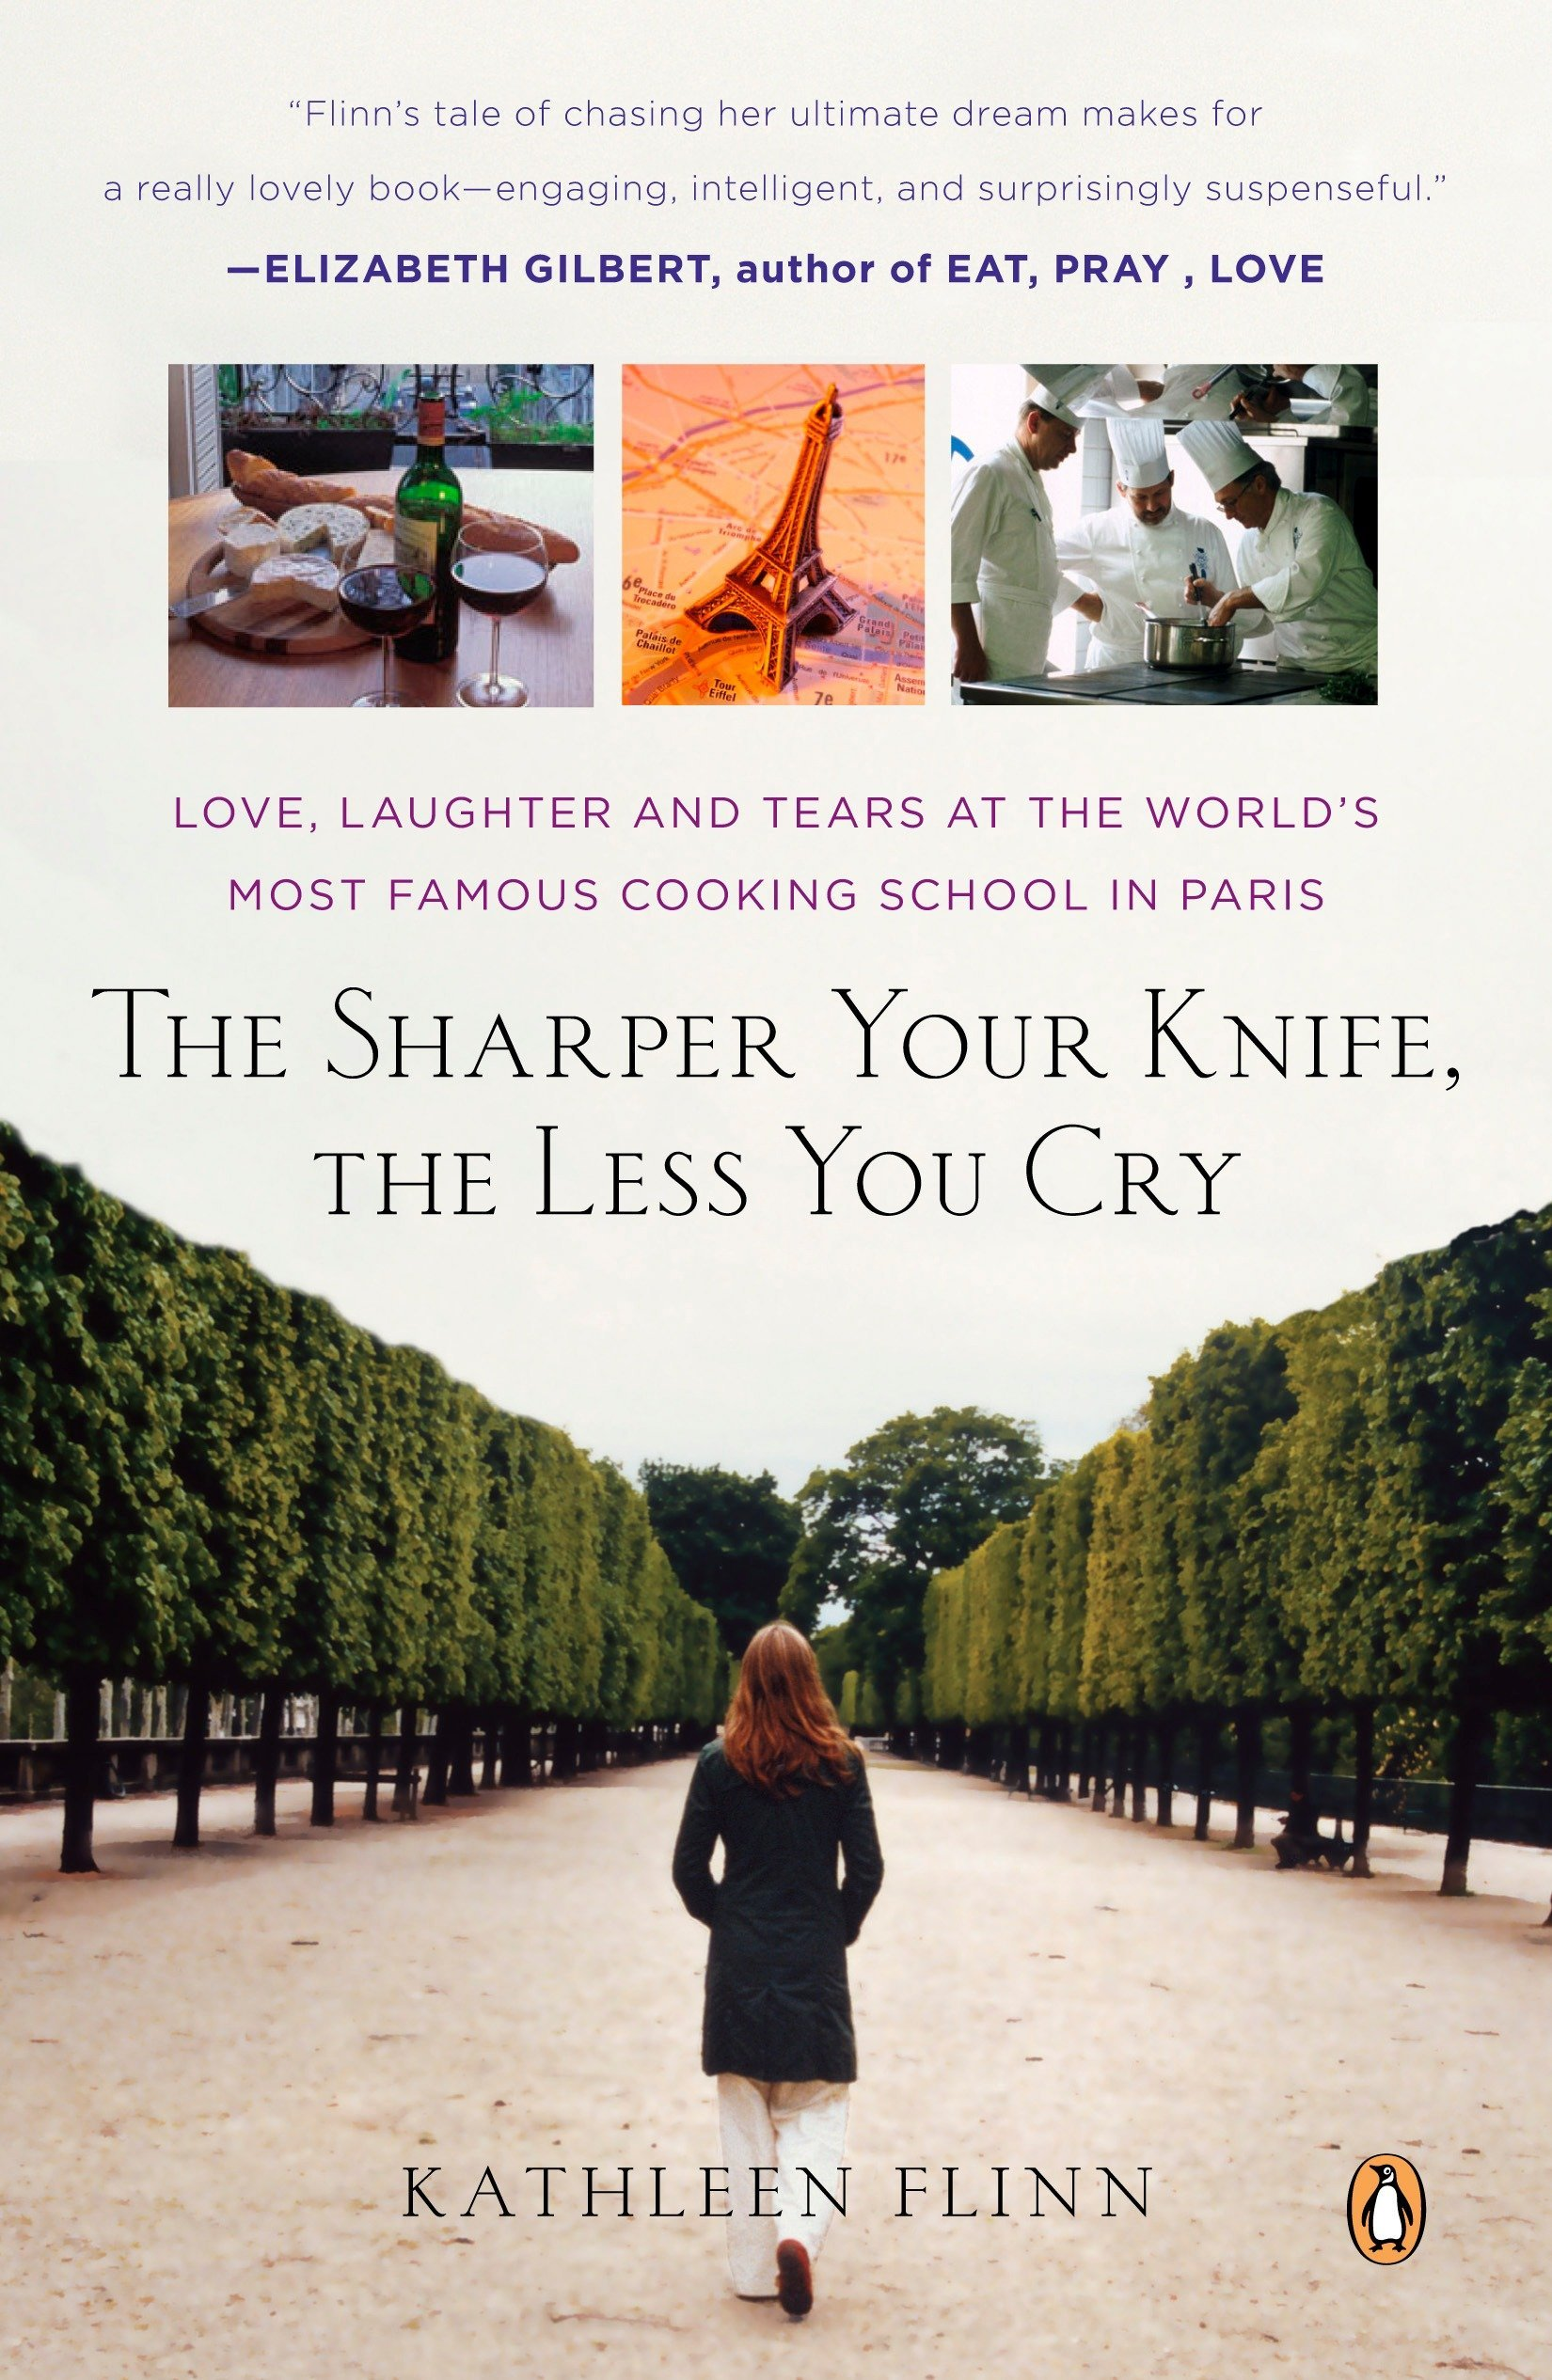 Download The Sharper Your Knife, the Less You Cry: Love, Laughter, and Tears in Paris at the World's Most Famous Cooking School pdf epub